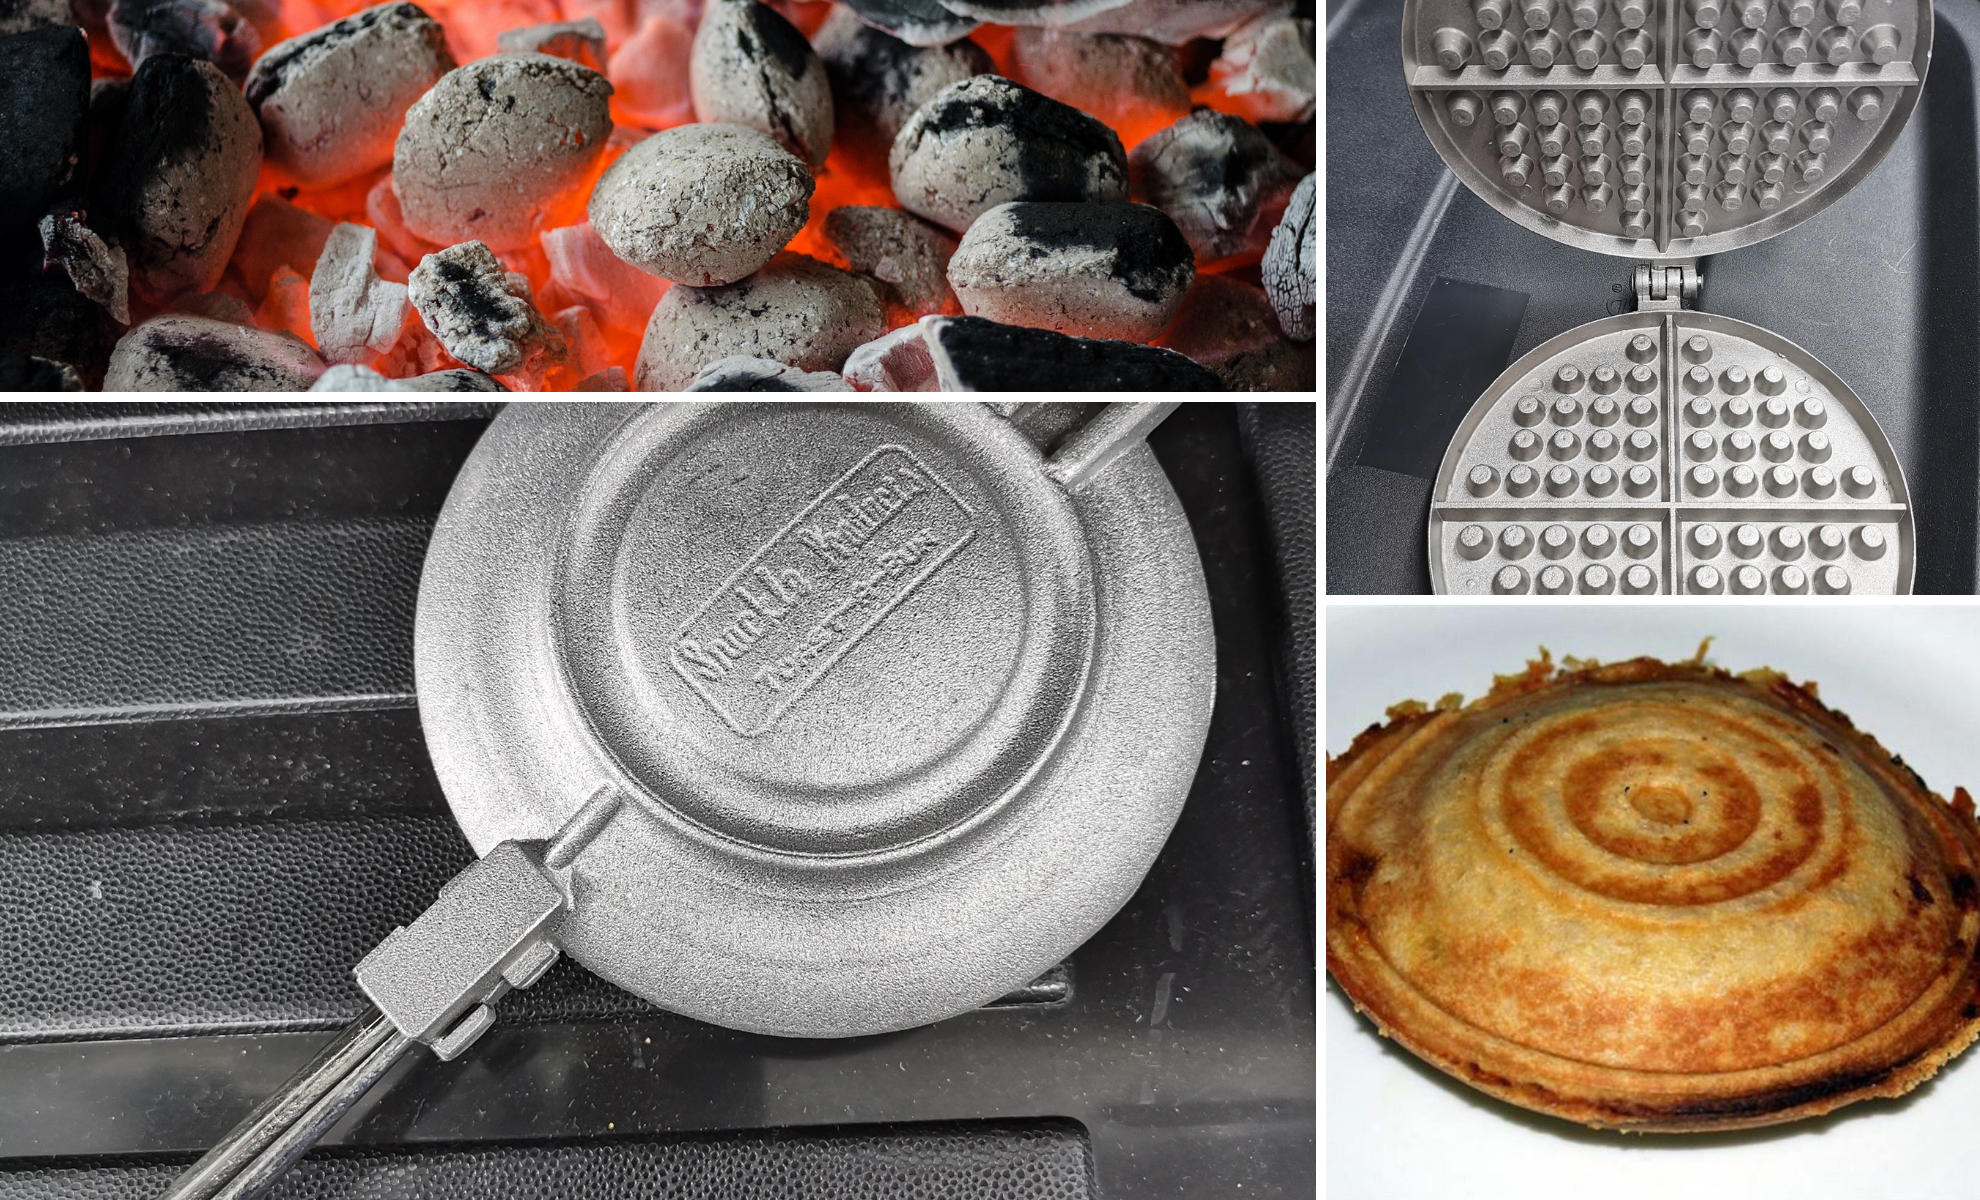 Winter Braai – Making Jaffels and Waffles on the Fire